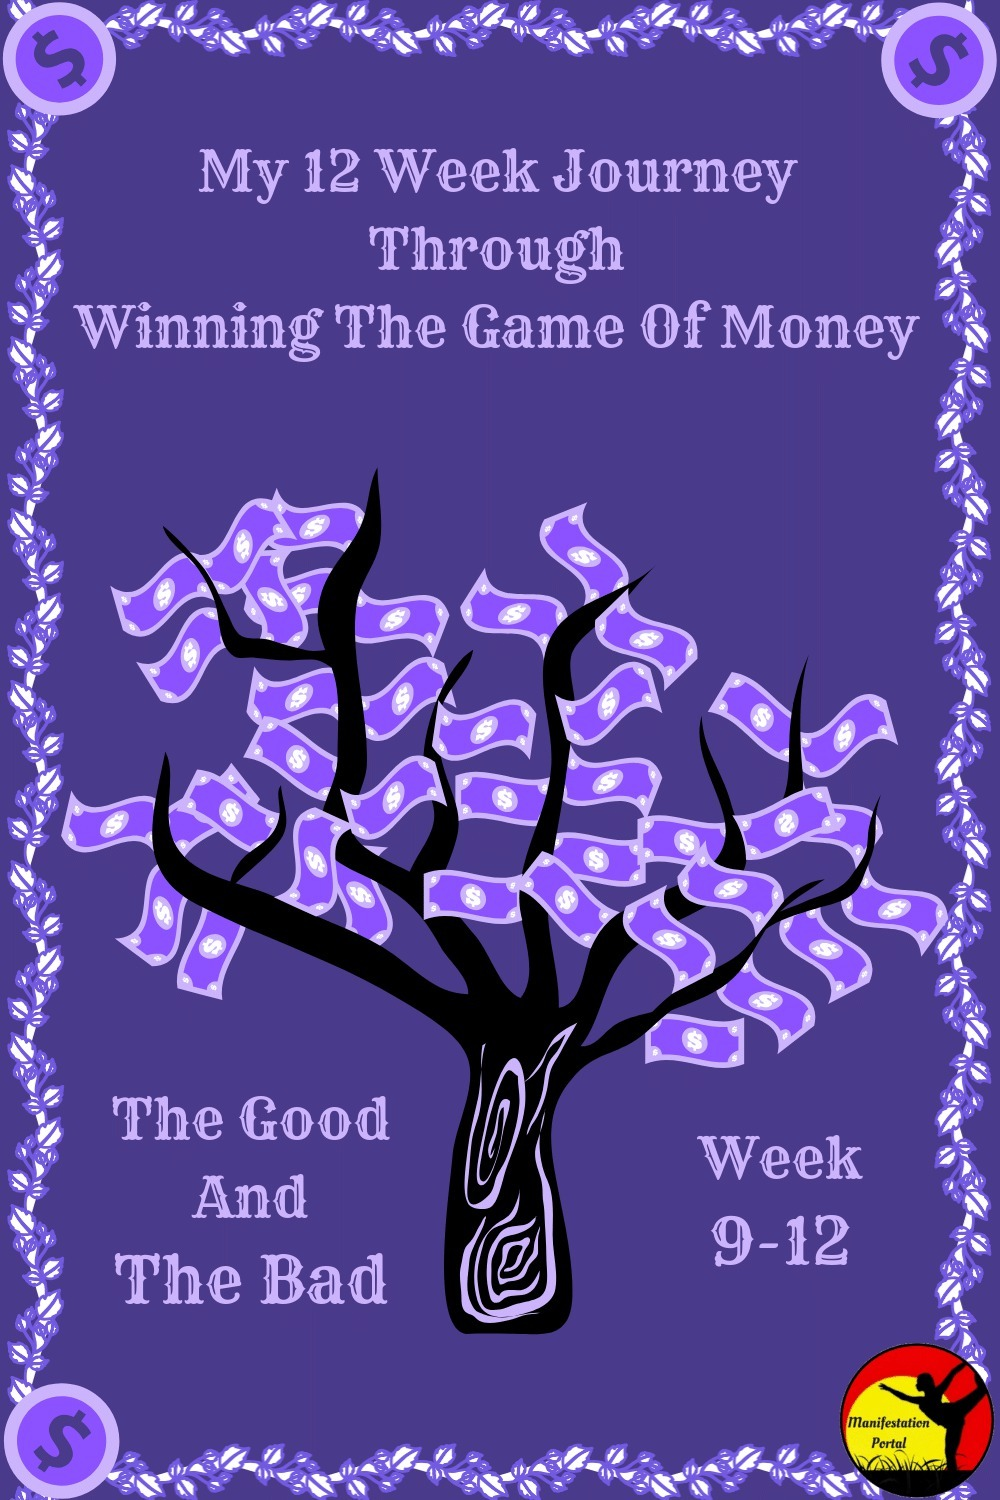 Winning The Game Of Money Level 9-12 - What I Learned